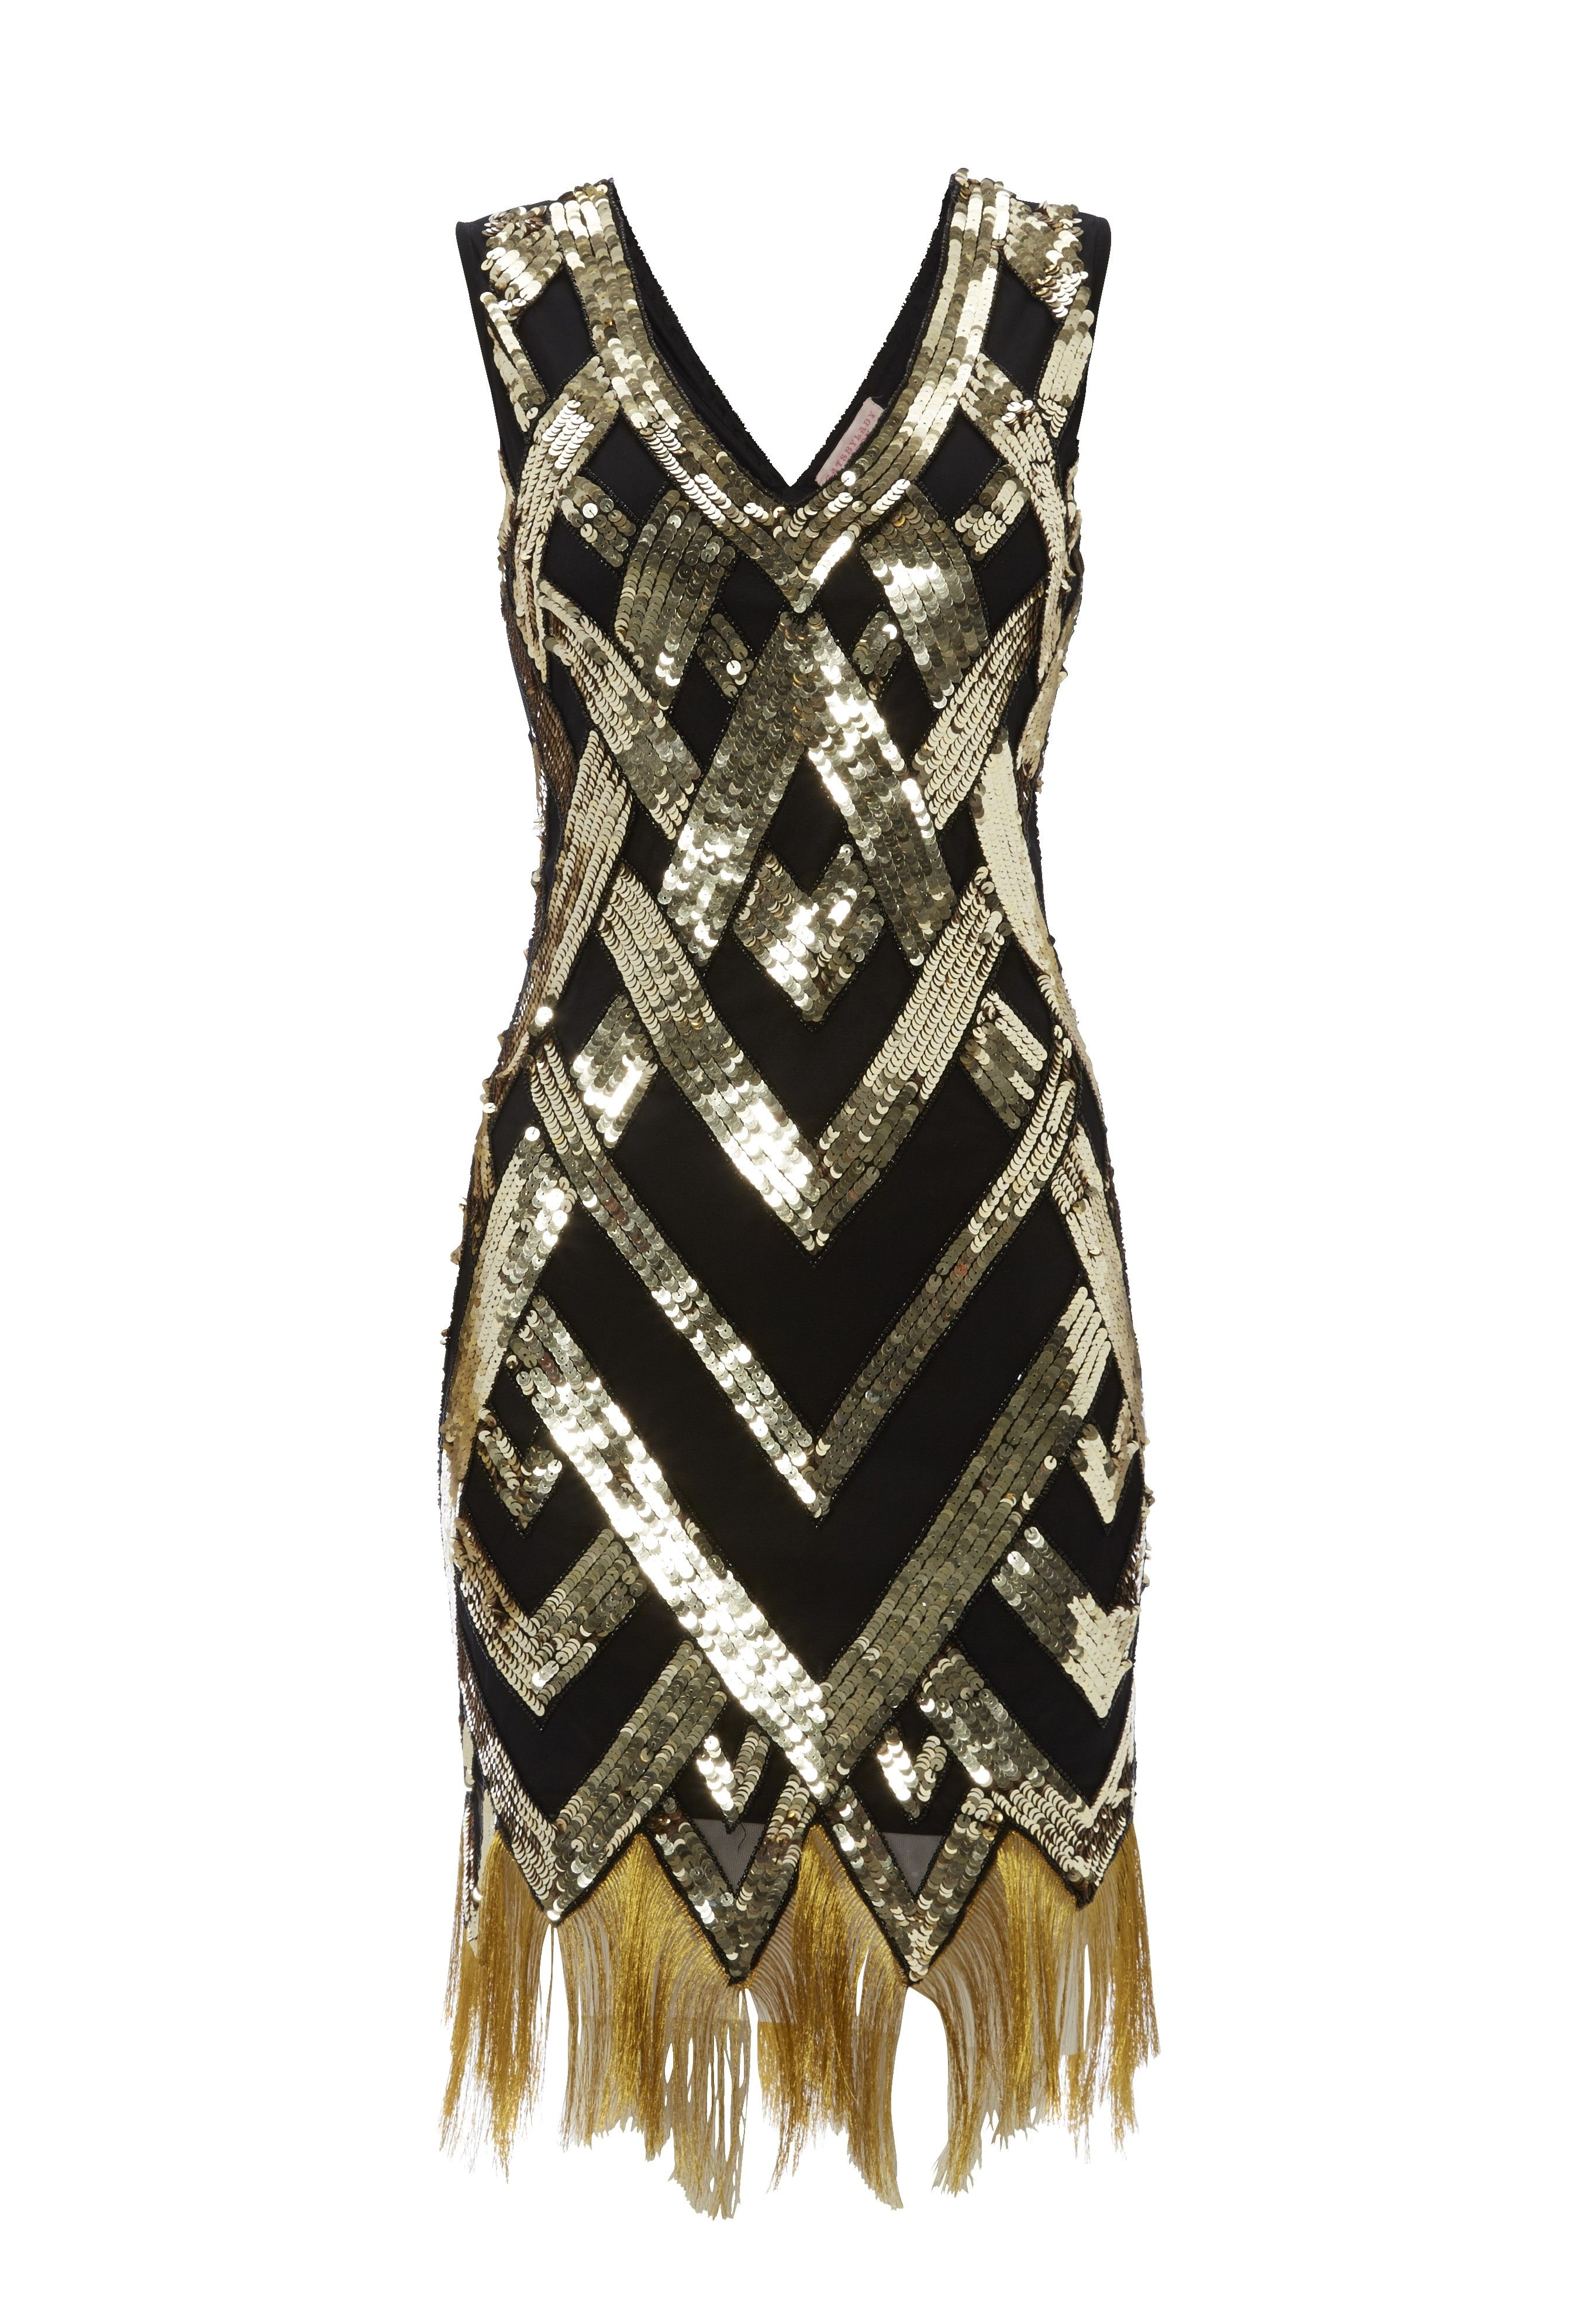 BLACK GOLD VINTAGE INSPIRED 1920S VIBE FLAPPER GREAT GATSBY BEADED ...